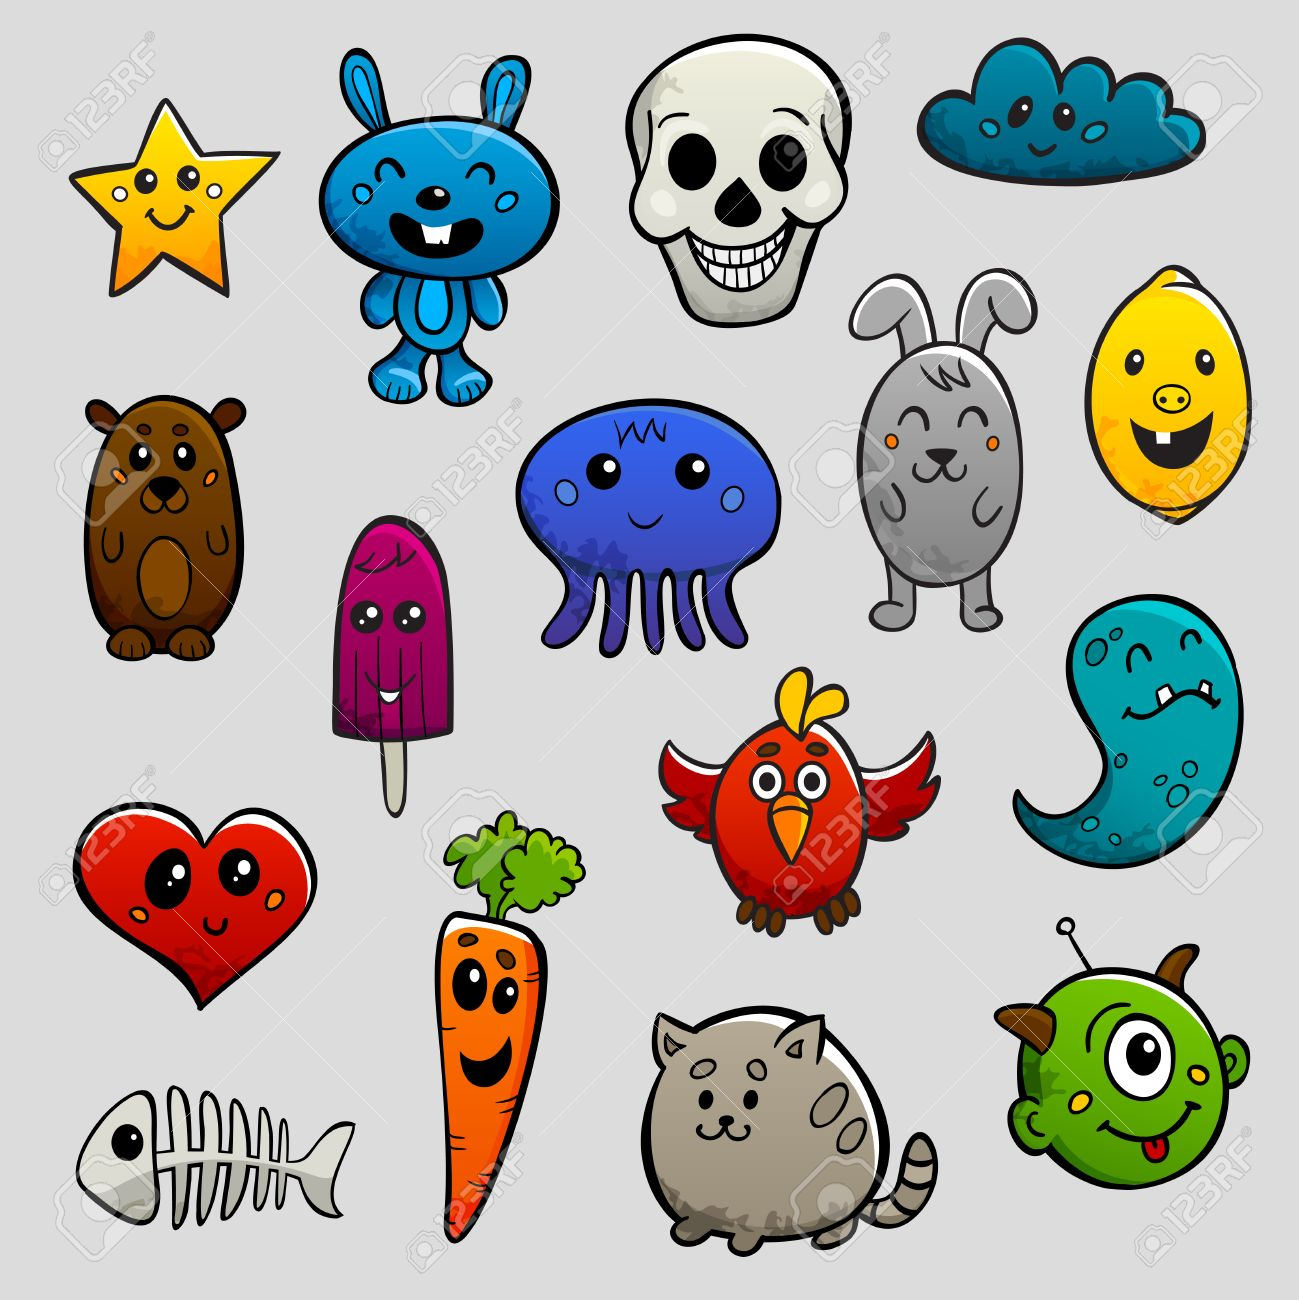 Graffiti Cartoon Characters Abstract Animals And Fruits Flat Bright Color Icon Set Isolated Vector Illustration Stock